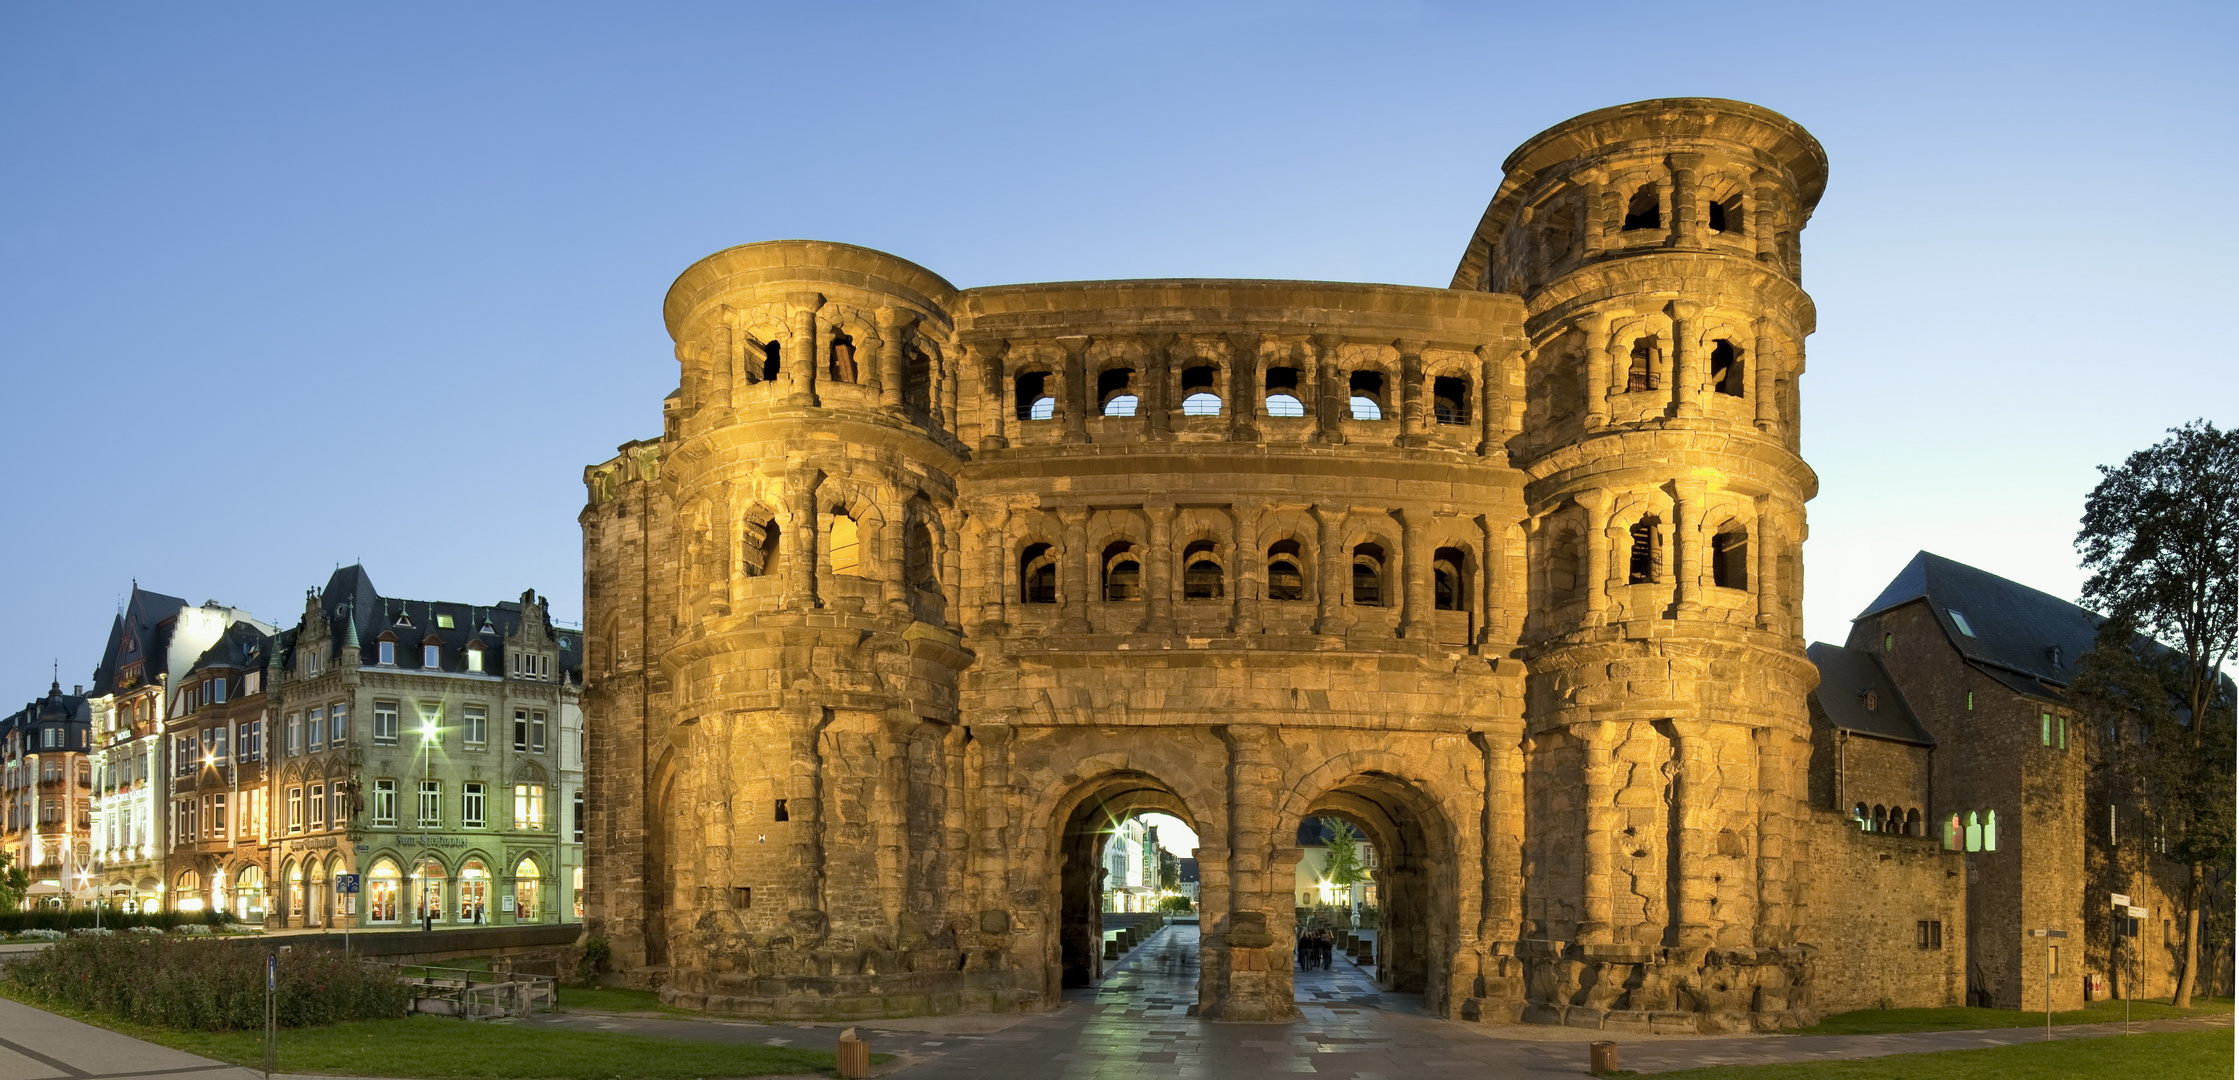 porta nigra beleuchtet panorama foto bild deutschland europe saarland bilder auf fotocommunity. Black Bedroom Furniture Sets. Home Design Ideas